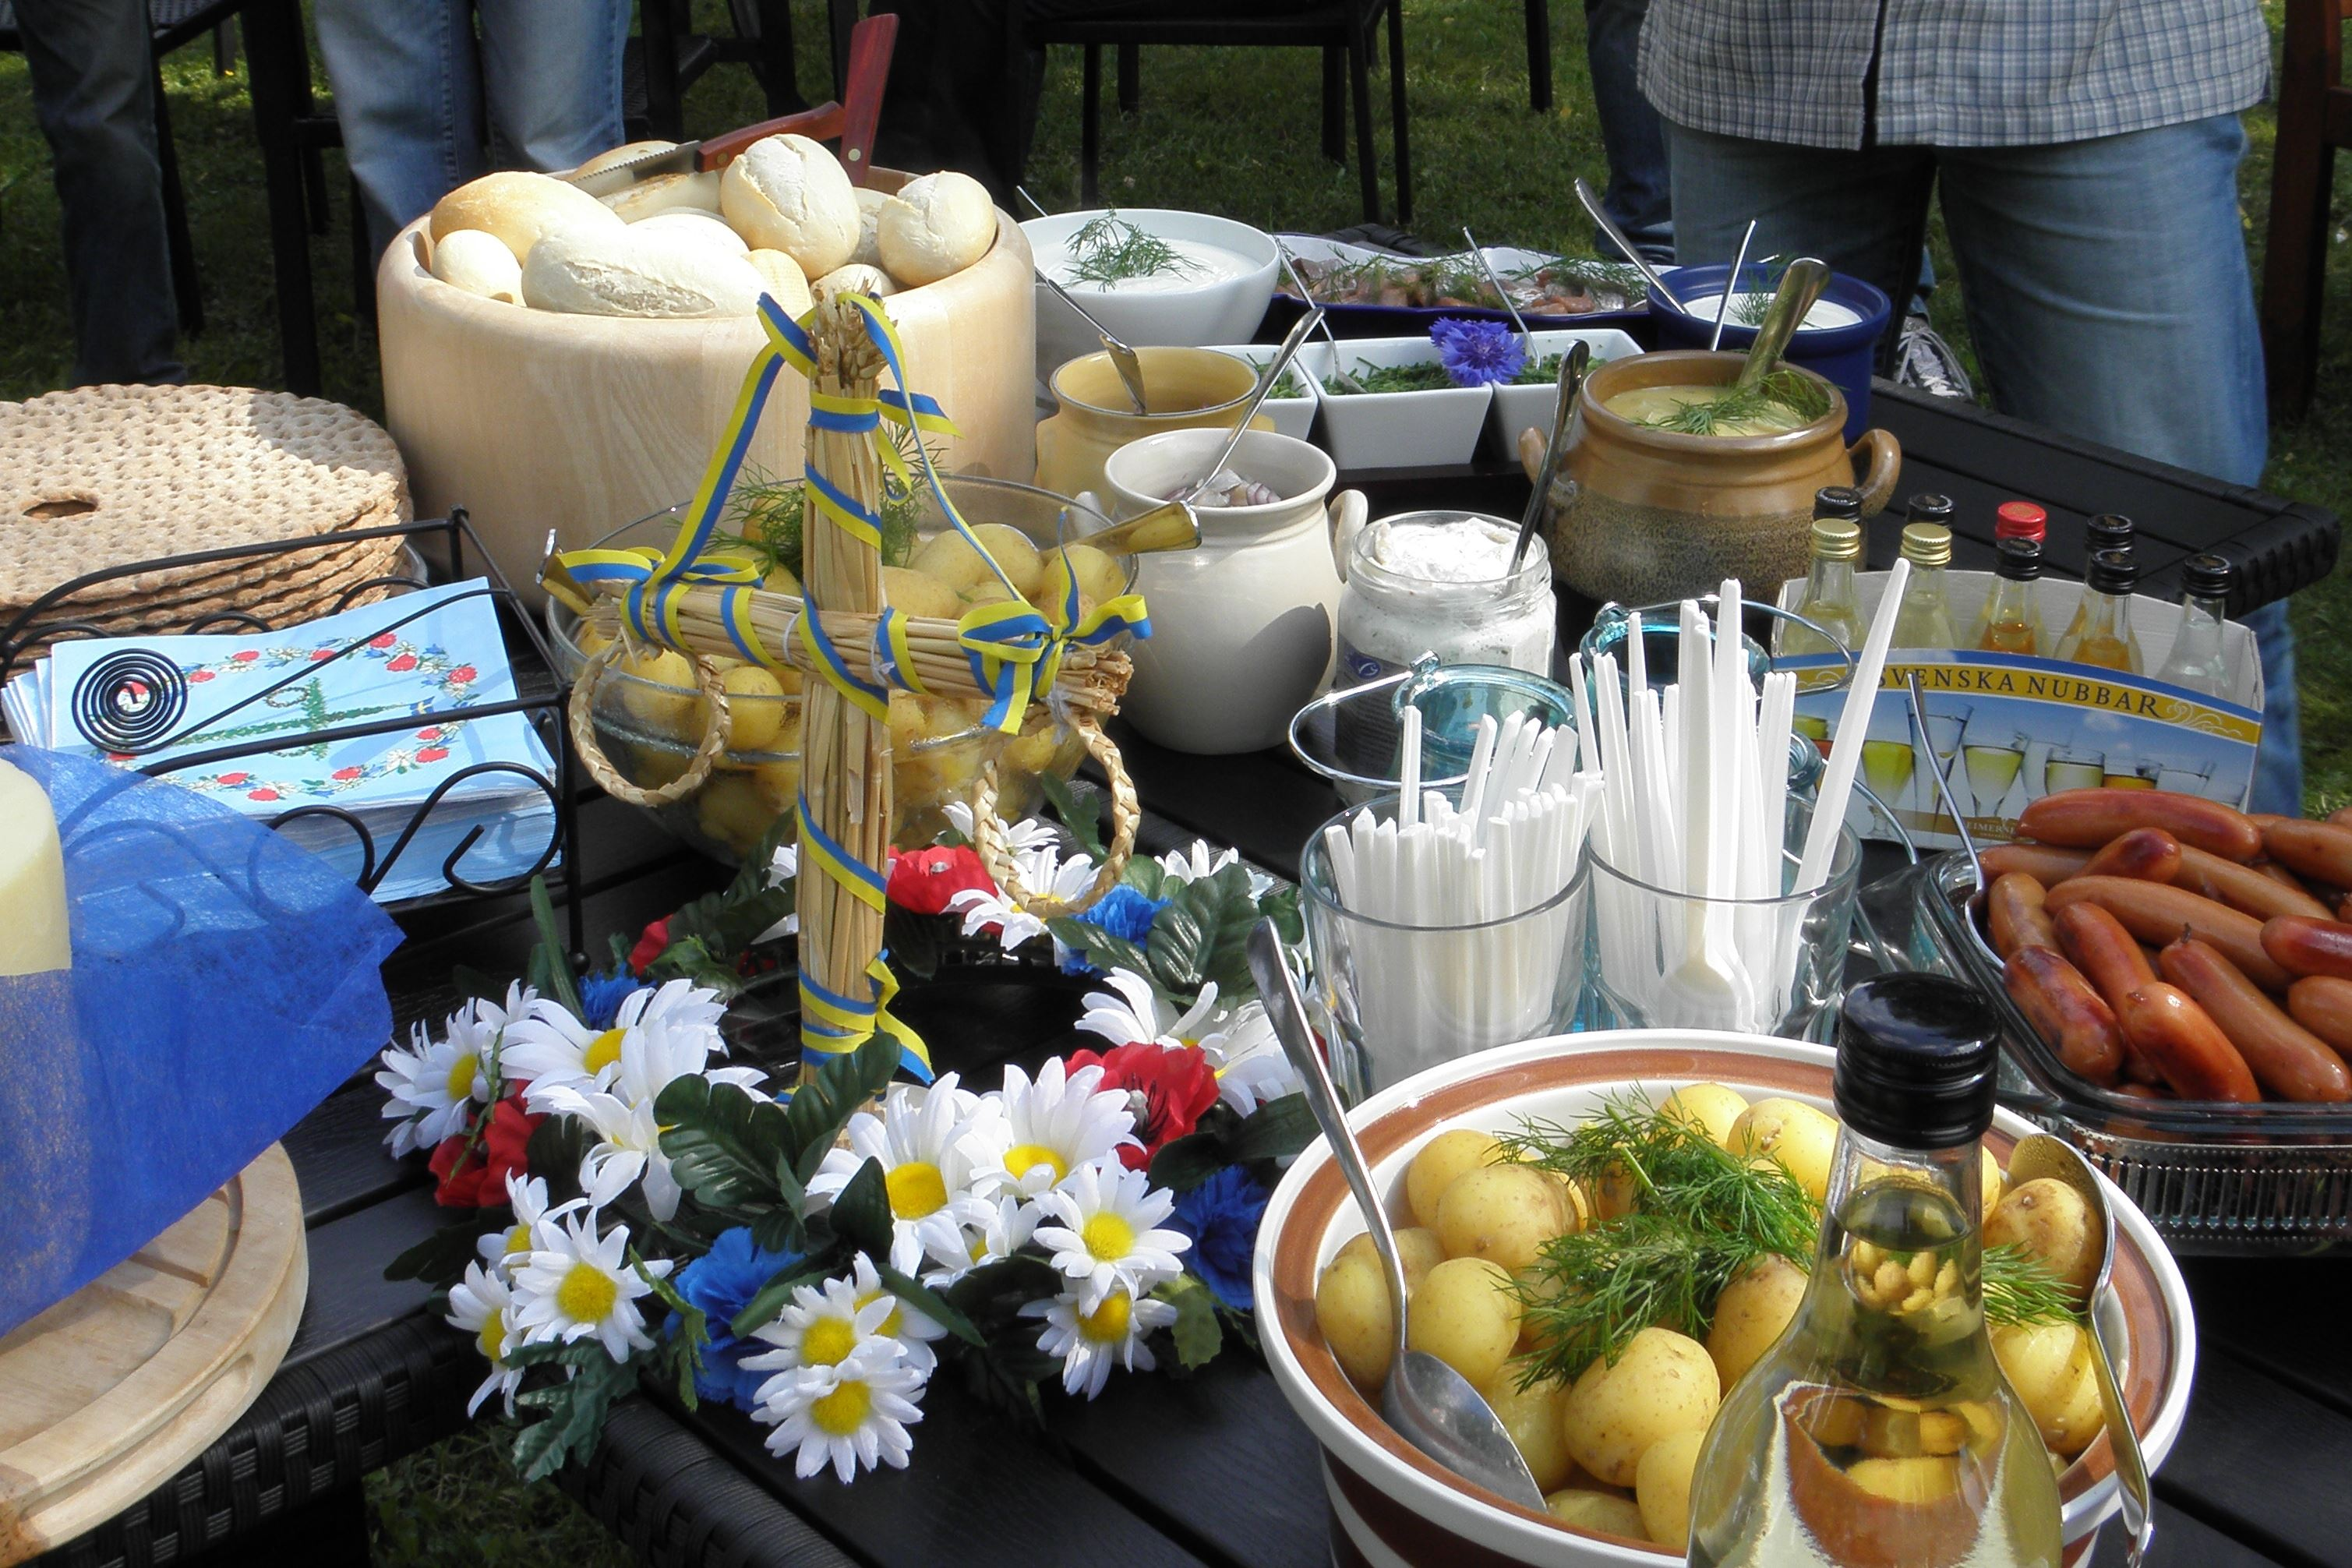 Fira midsommar på KustCamp Gamleby - Camping